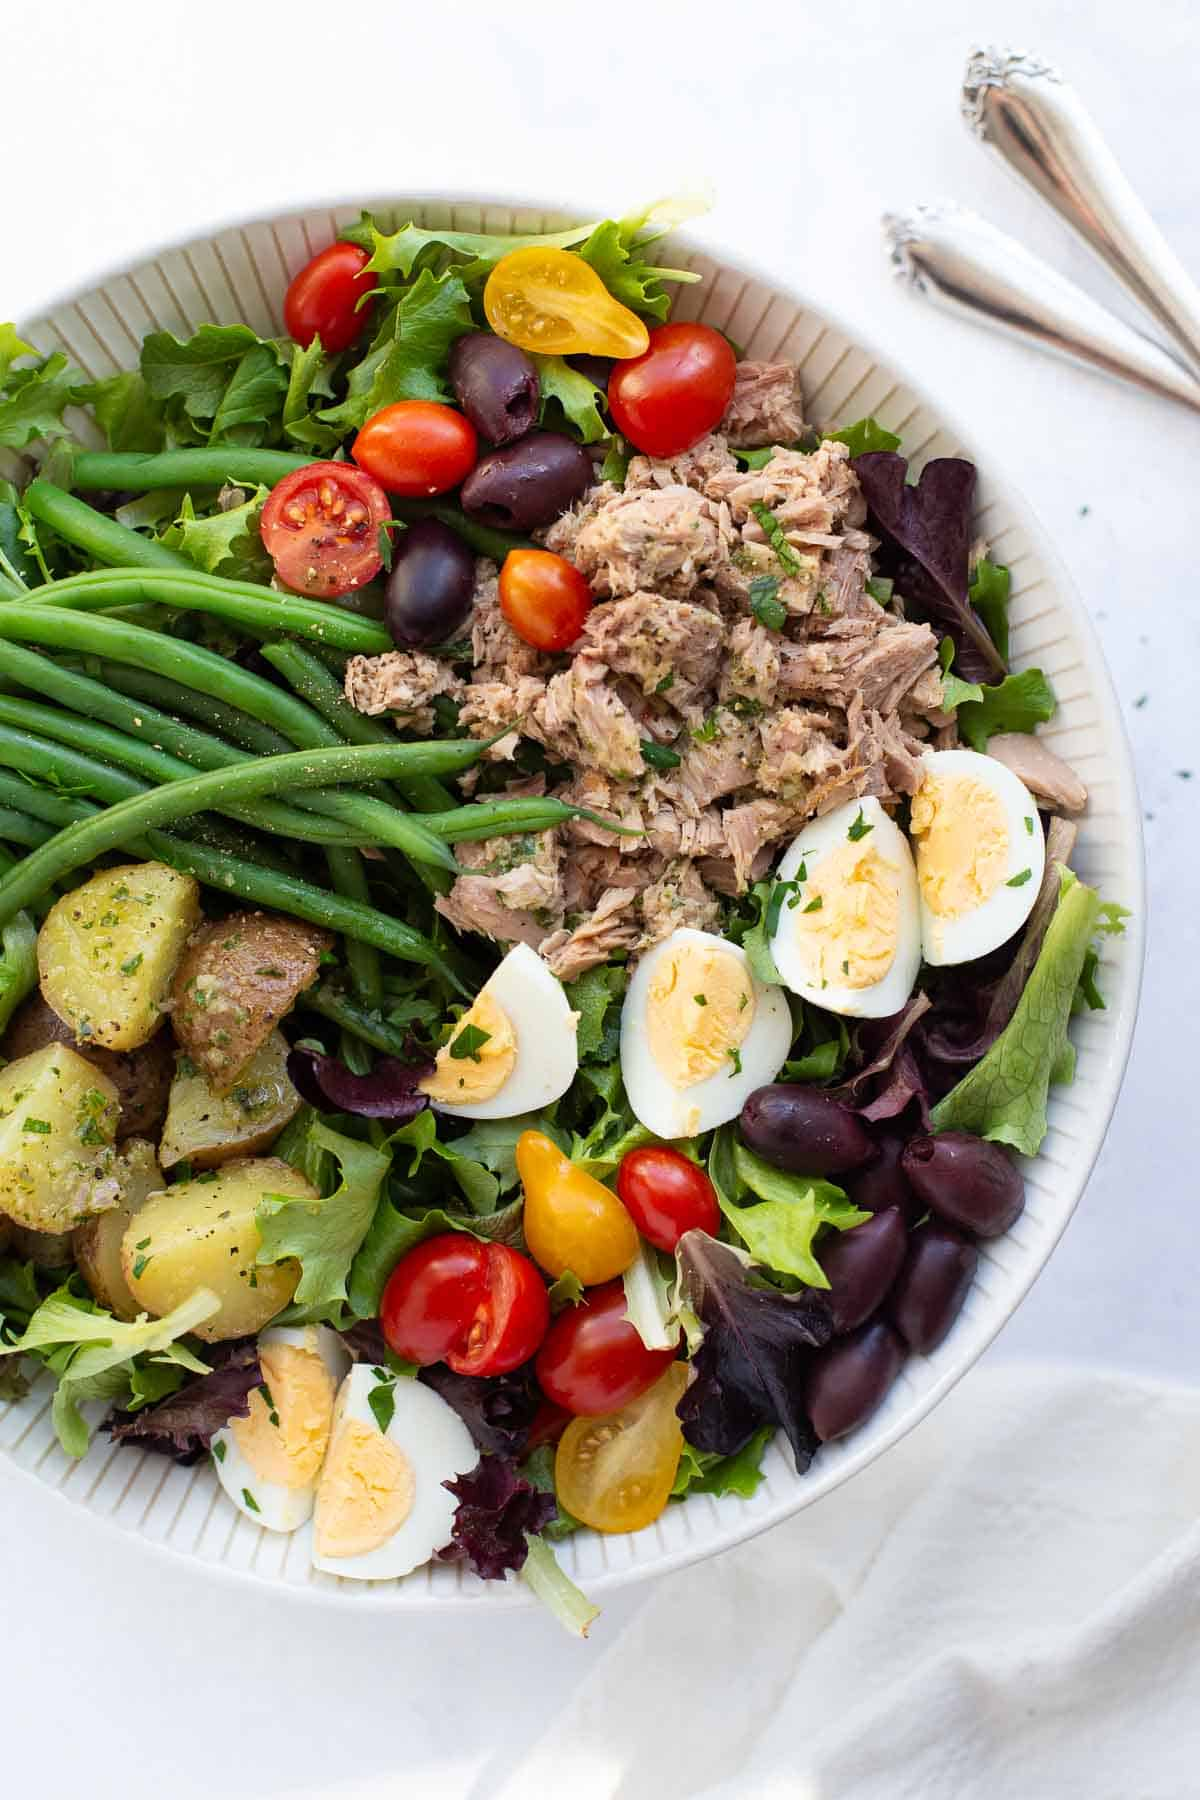 Salad nicoise with spring greens, potatoes, green beans, eggs, cherry tomatoes, tuna, olives and a fresh herb vinaigrette.